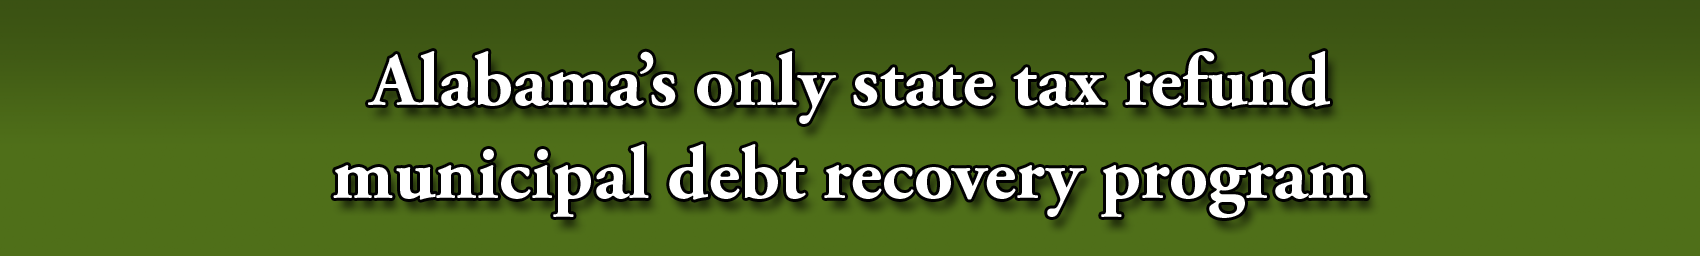 Debt recovery banner V2